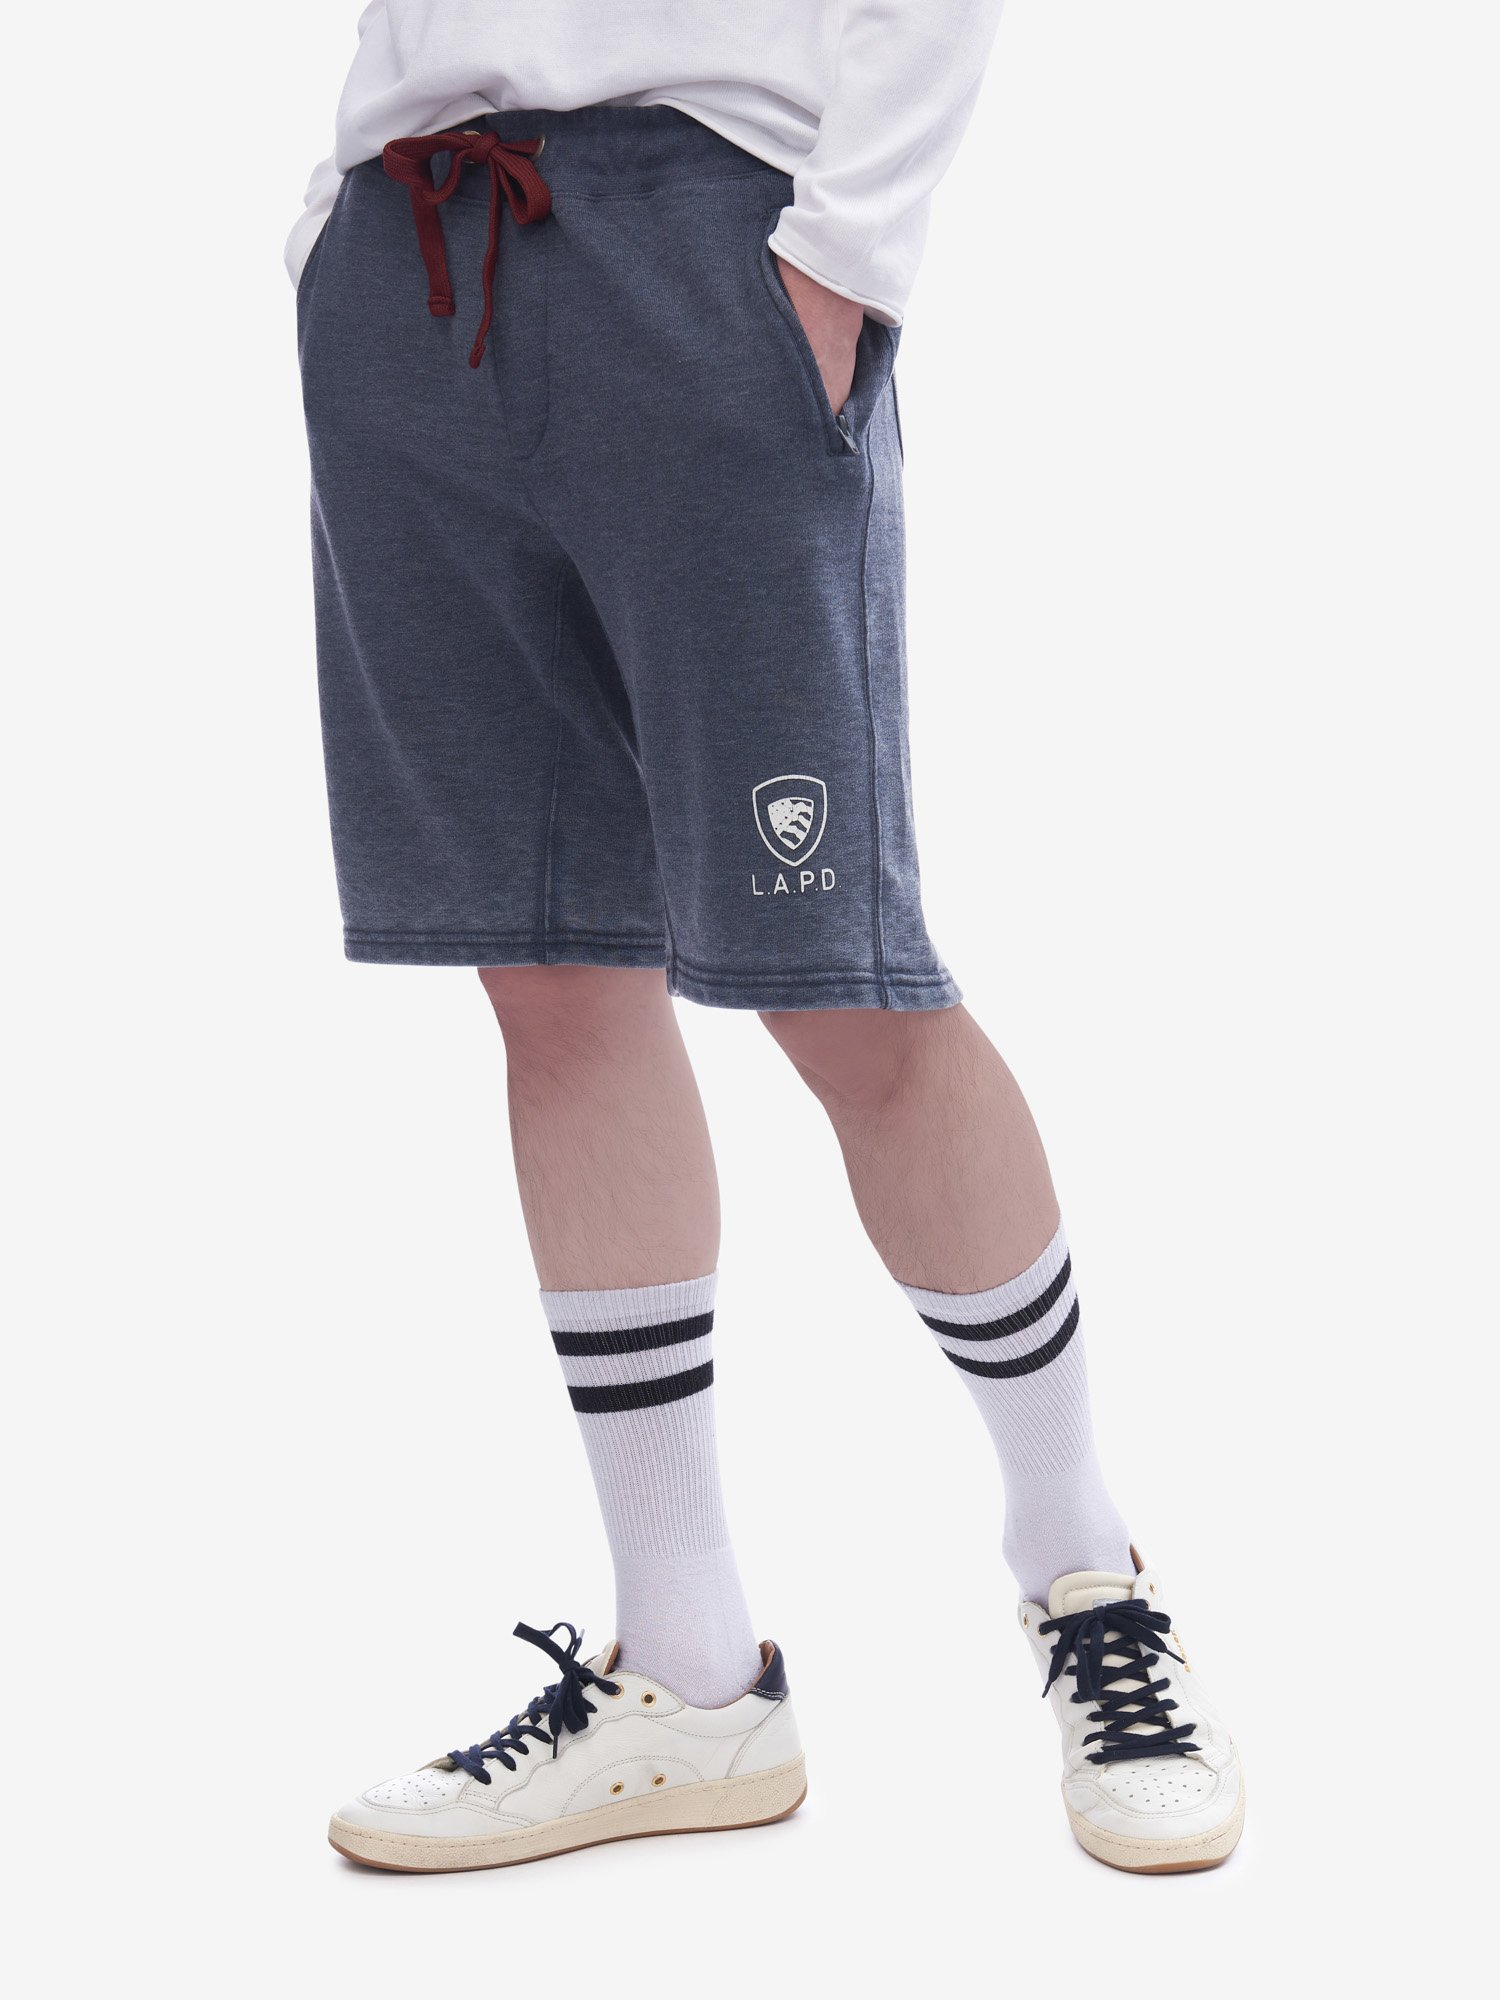 L.A.P.D. SHORT SWEATPANTS - Blauer